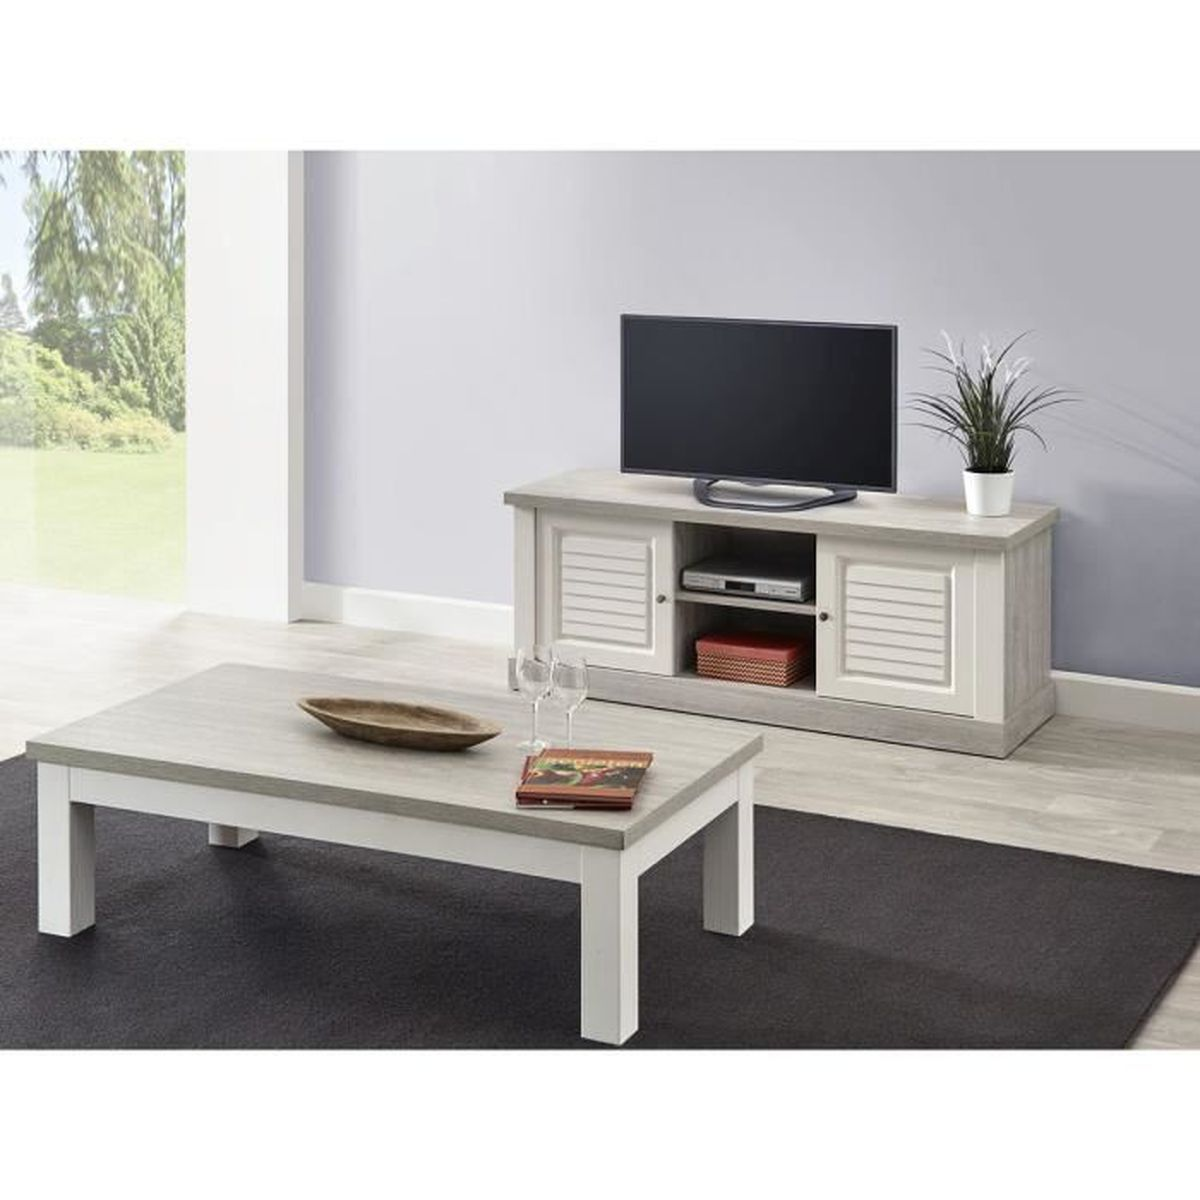 conrad ensemble table basse et meuble tv blanc achat. Black Bedroom Furniture Sets. Home Design Ideas